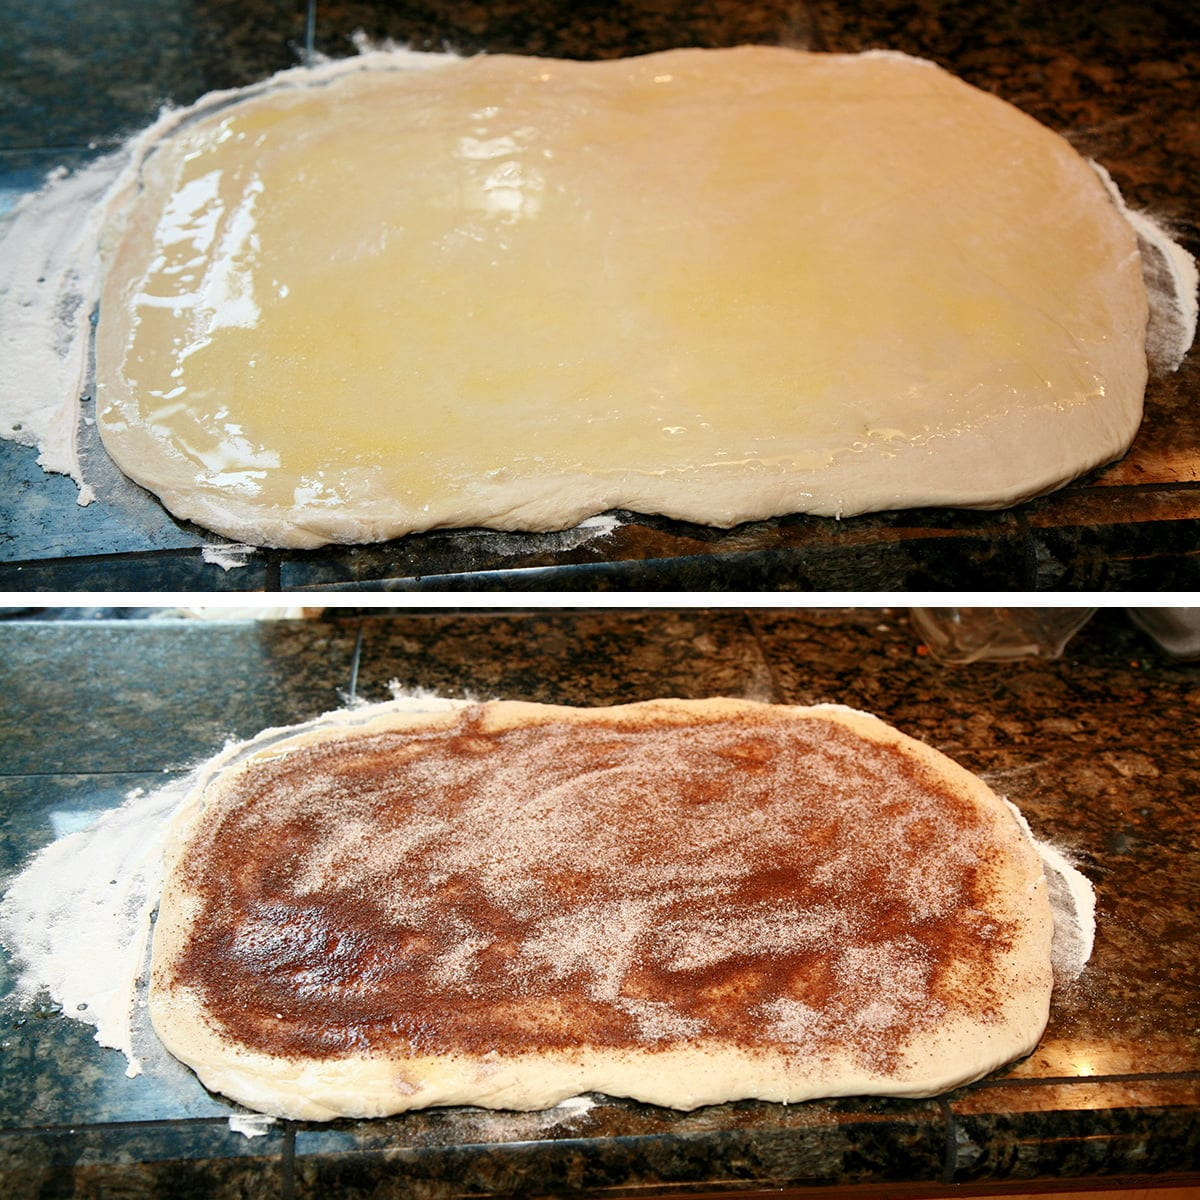 A two part compilation image showing a rectangle of dough with melted butter spread over it, and then the same dough with a chai seasoned sugar mixture spread over it.